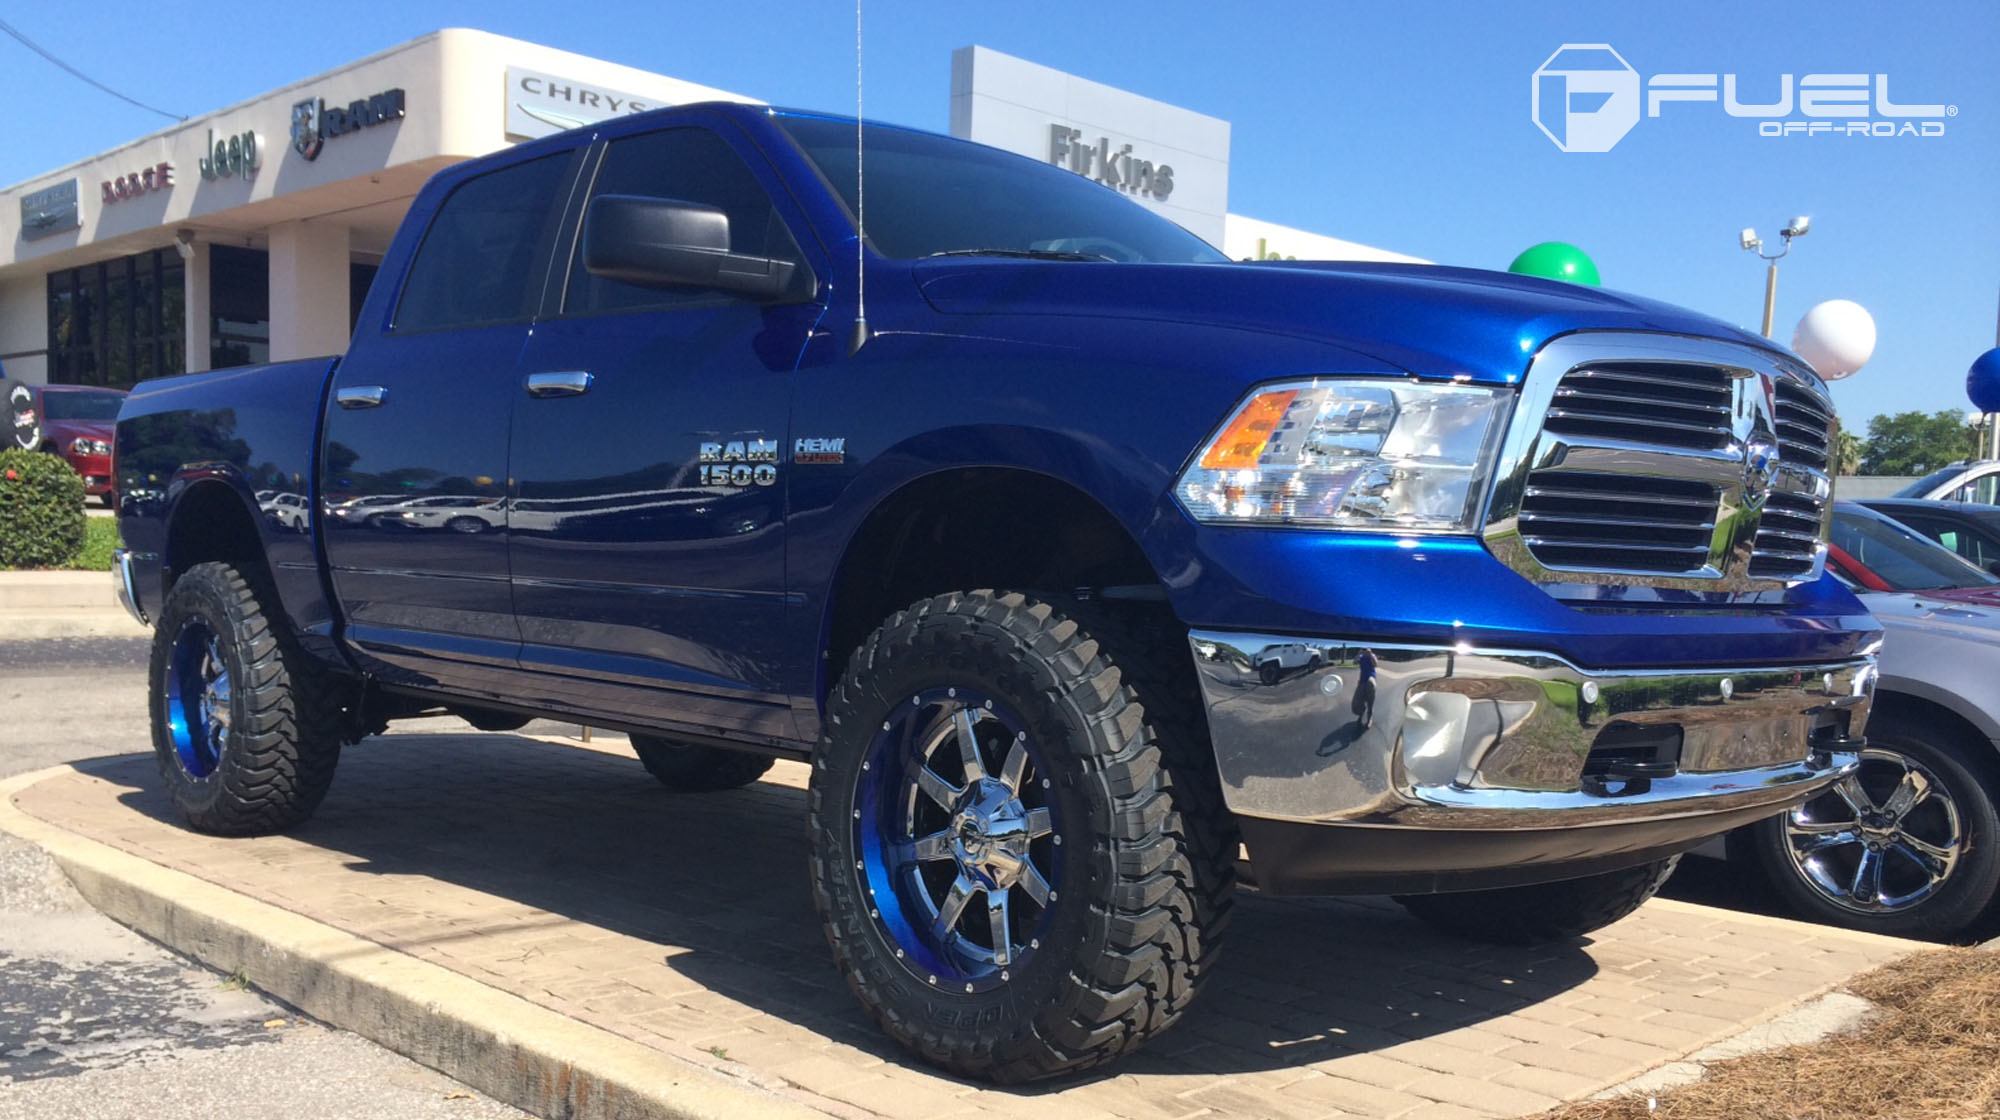 Dodge Ram 1500 Wheels And Tires Packages >> Dodge Ram 1500 Maverick D260 Gallery Mht Wheels Inc